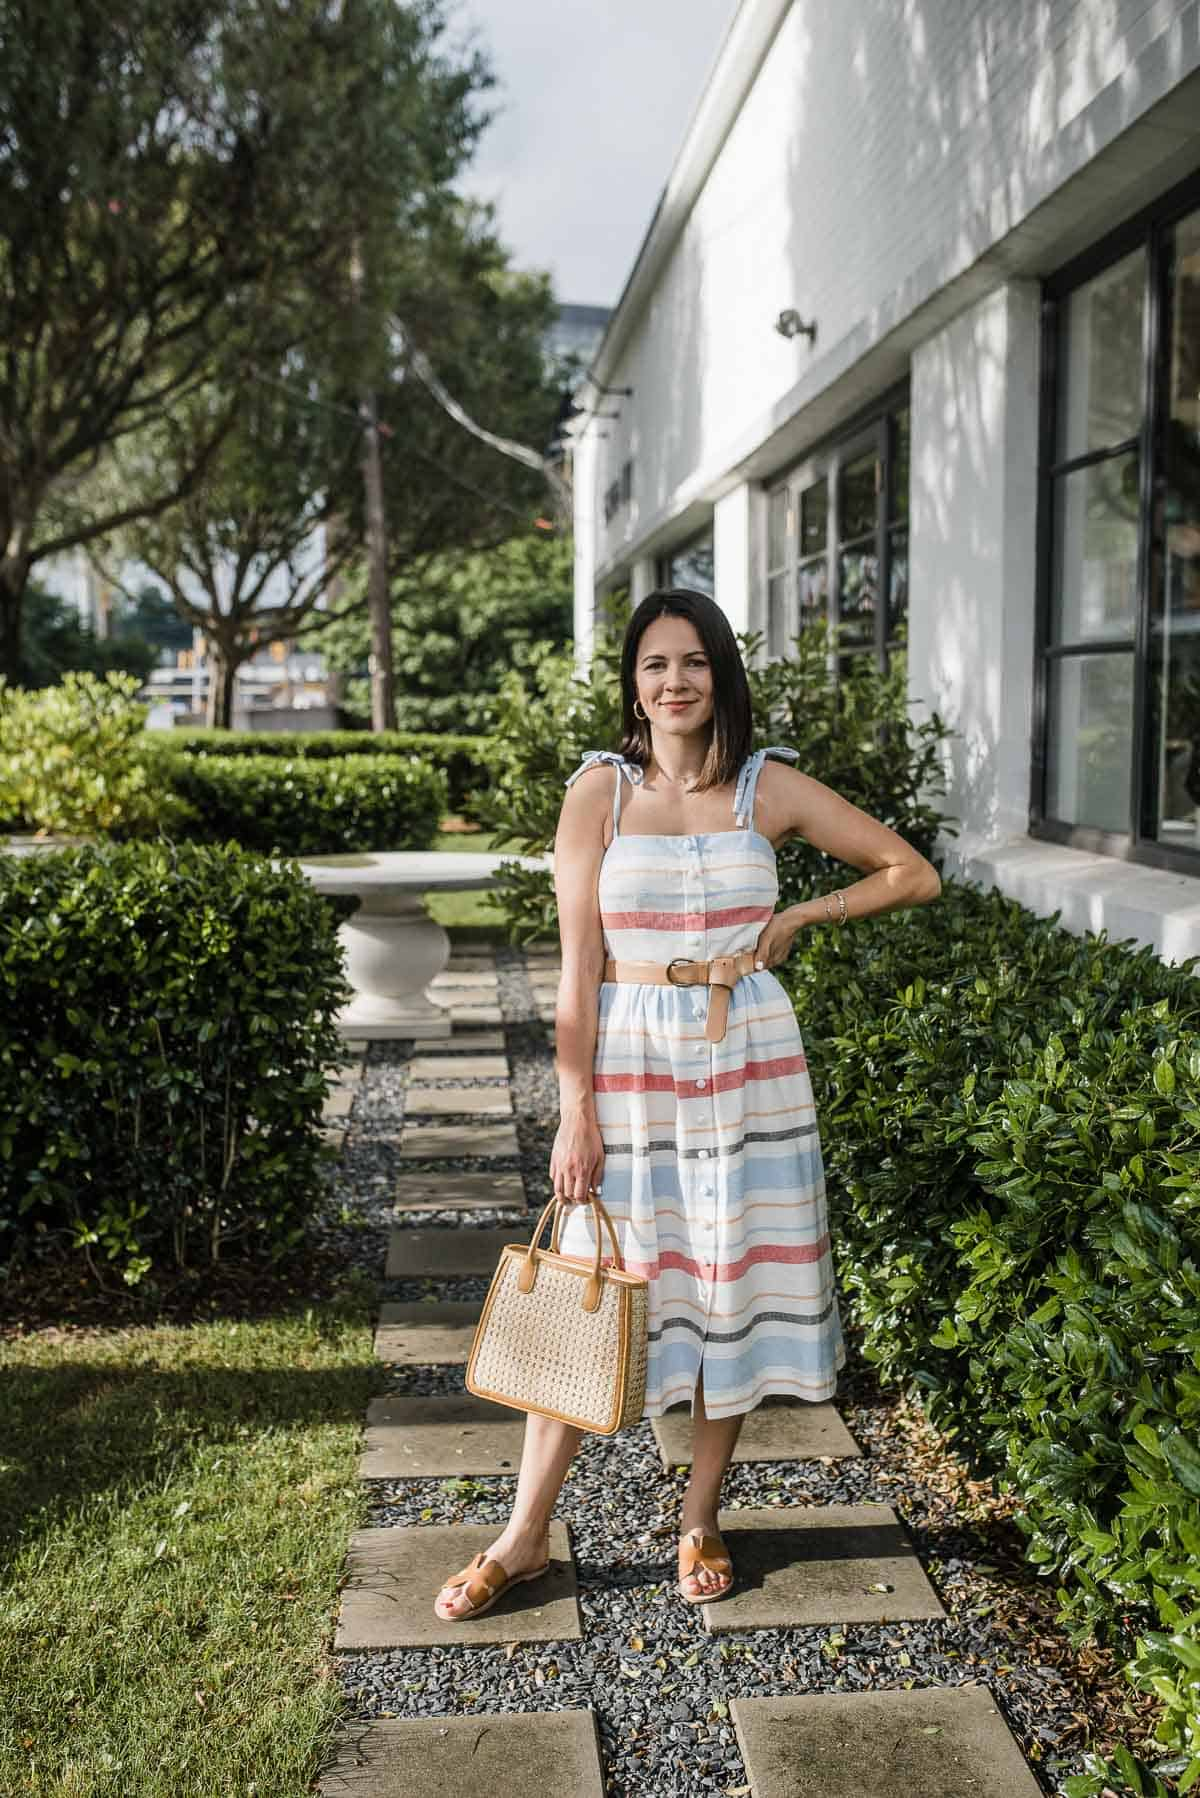 Talbots Bag, Gal Meets Glam Collection Hattie Dress, STEVEN Sandals